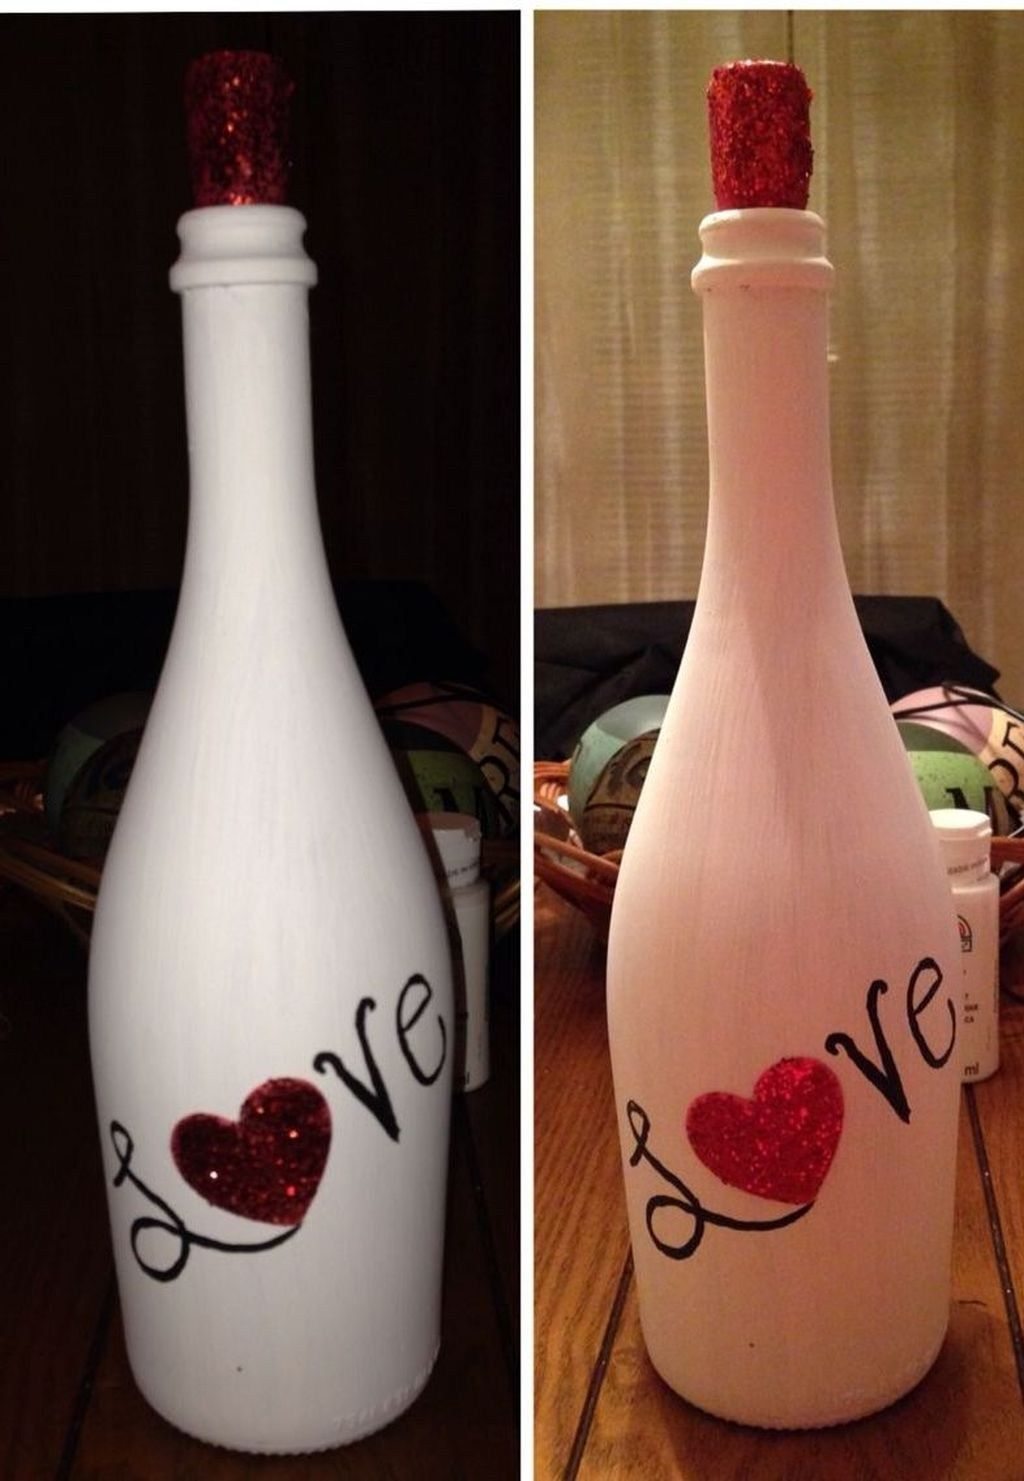 Pin By Sylvia Duryea On Lighted Bottles In 2020 With Images Hand Painted Wine Bottles Valentines Wine Bottles Valentines Wine